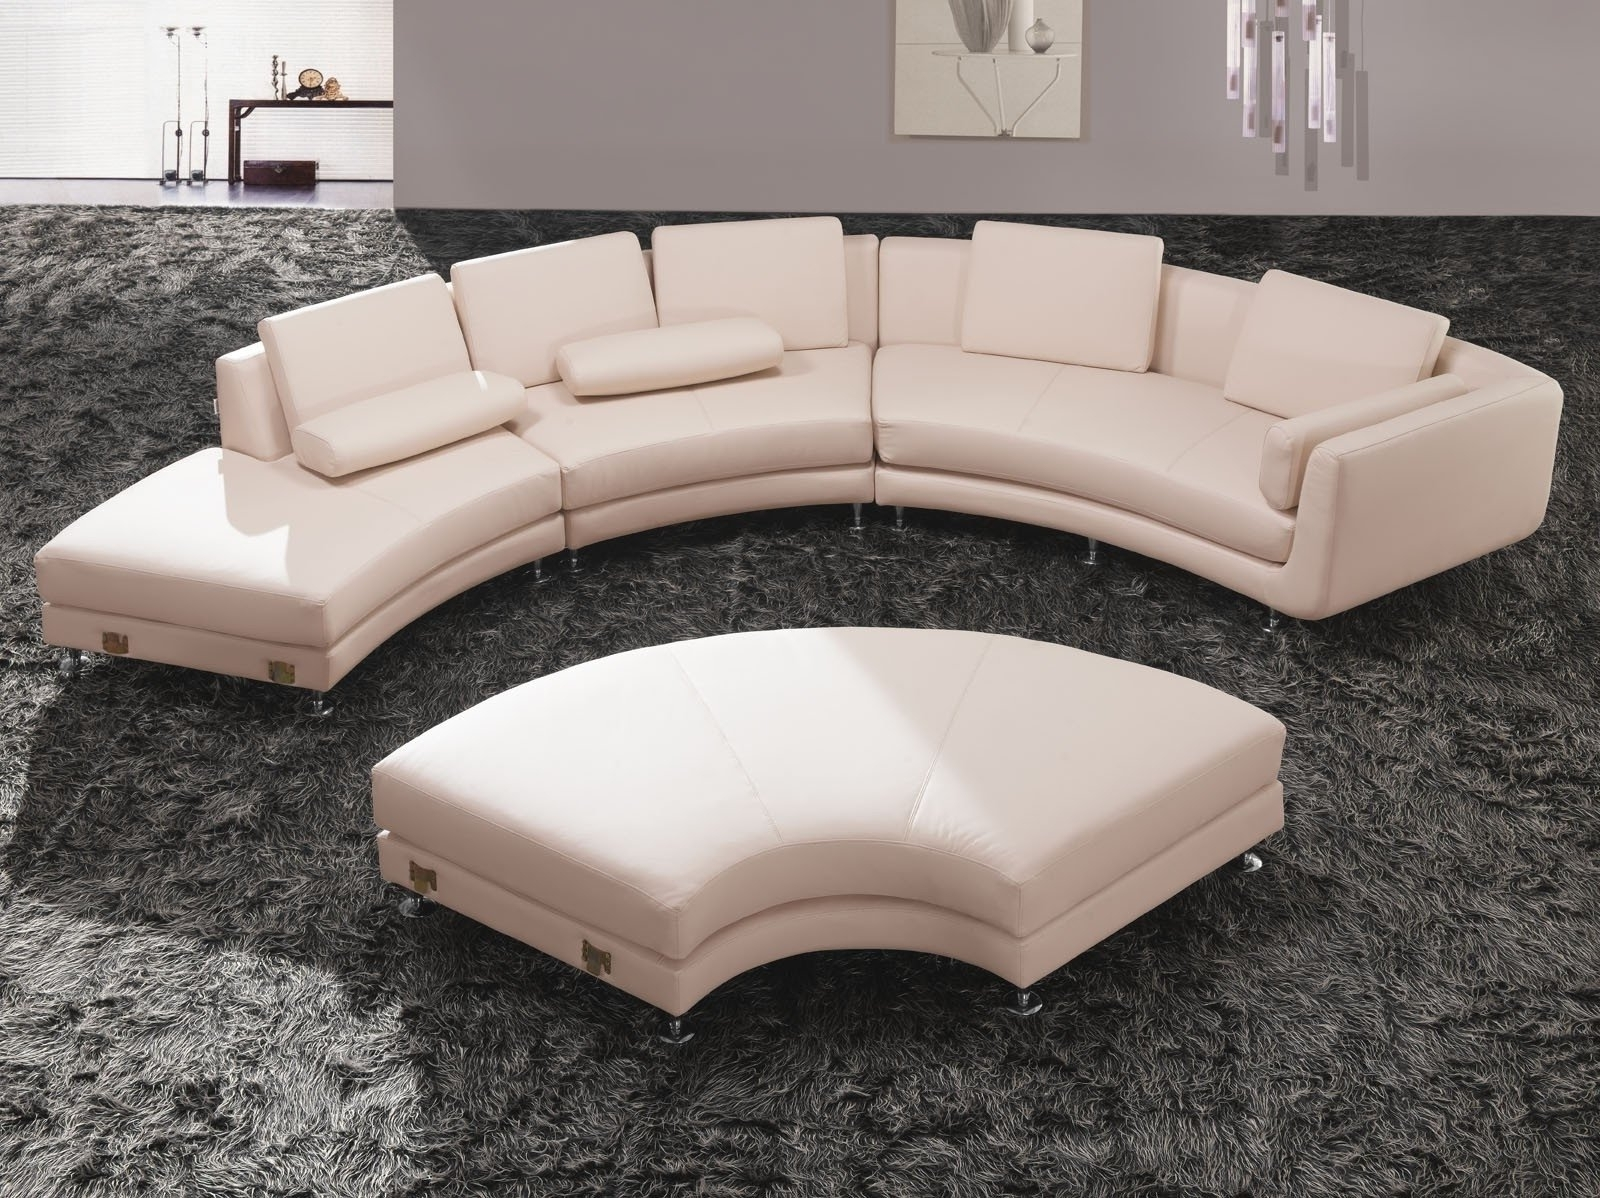 Hickory Nc Sectional Sofas Pertaining To Popular Sofas Center Curved Sectional Sofas Hickory Nc Luxury Sofa With (View 7 of 20)